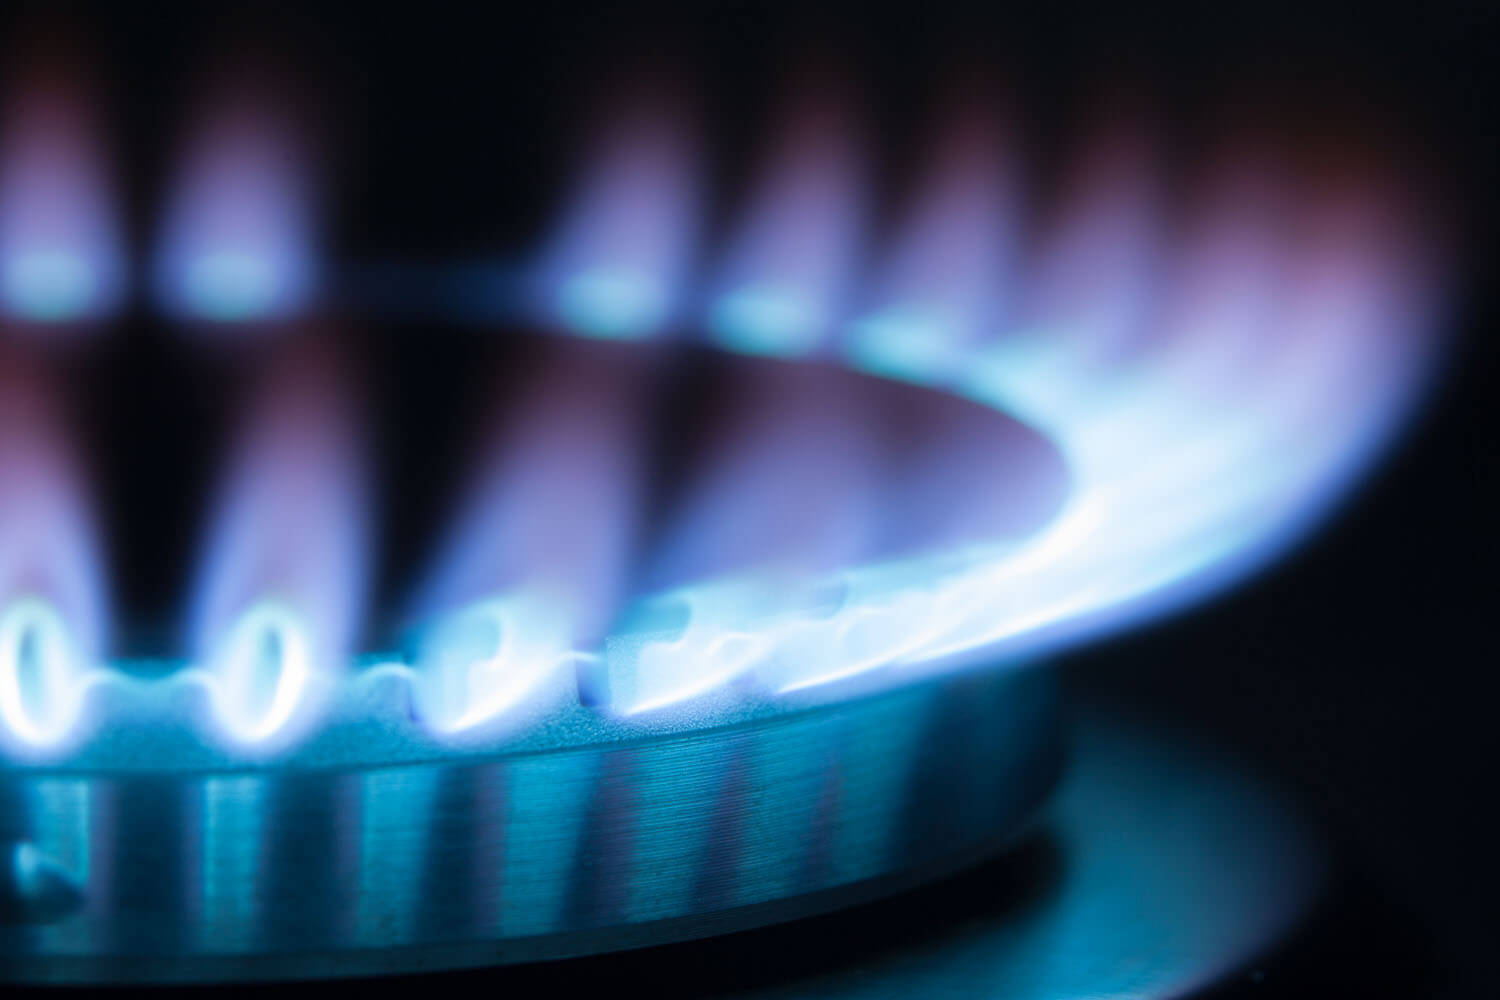 Commercial Gas Catering image